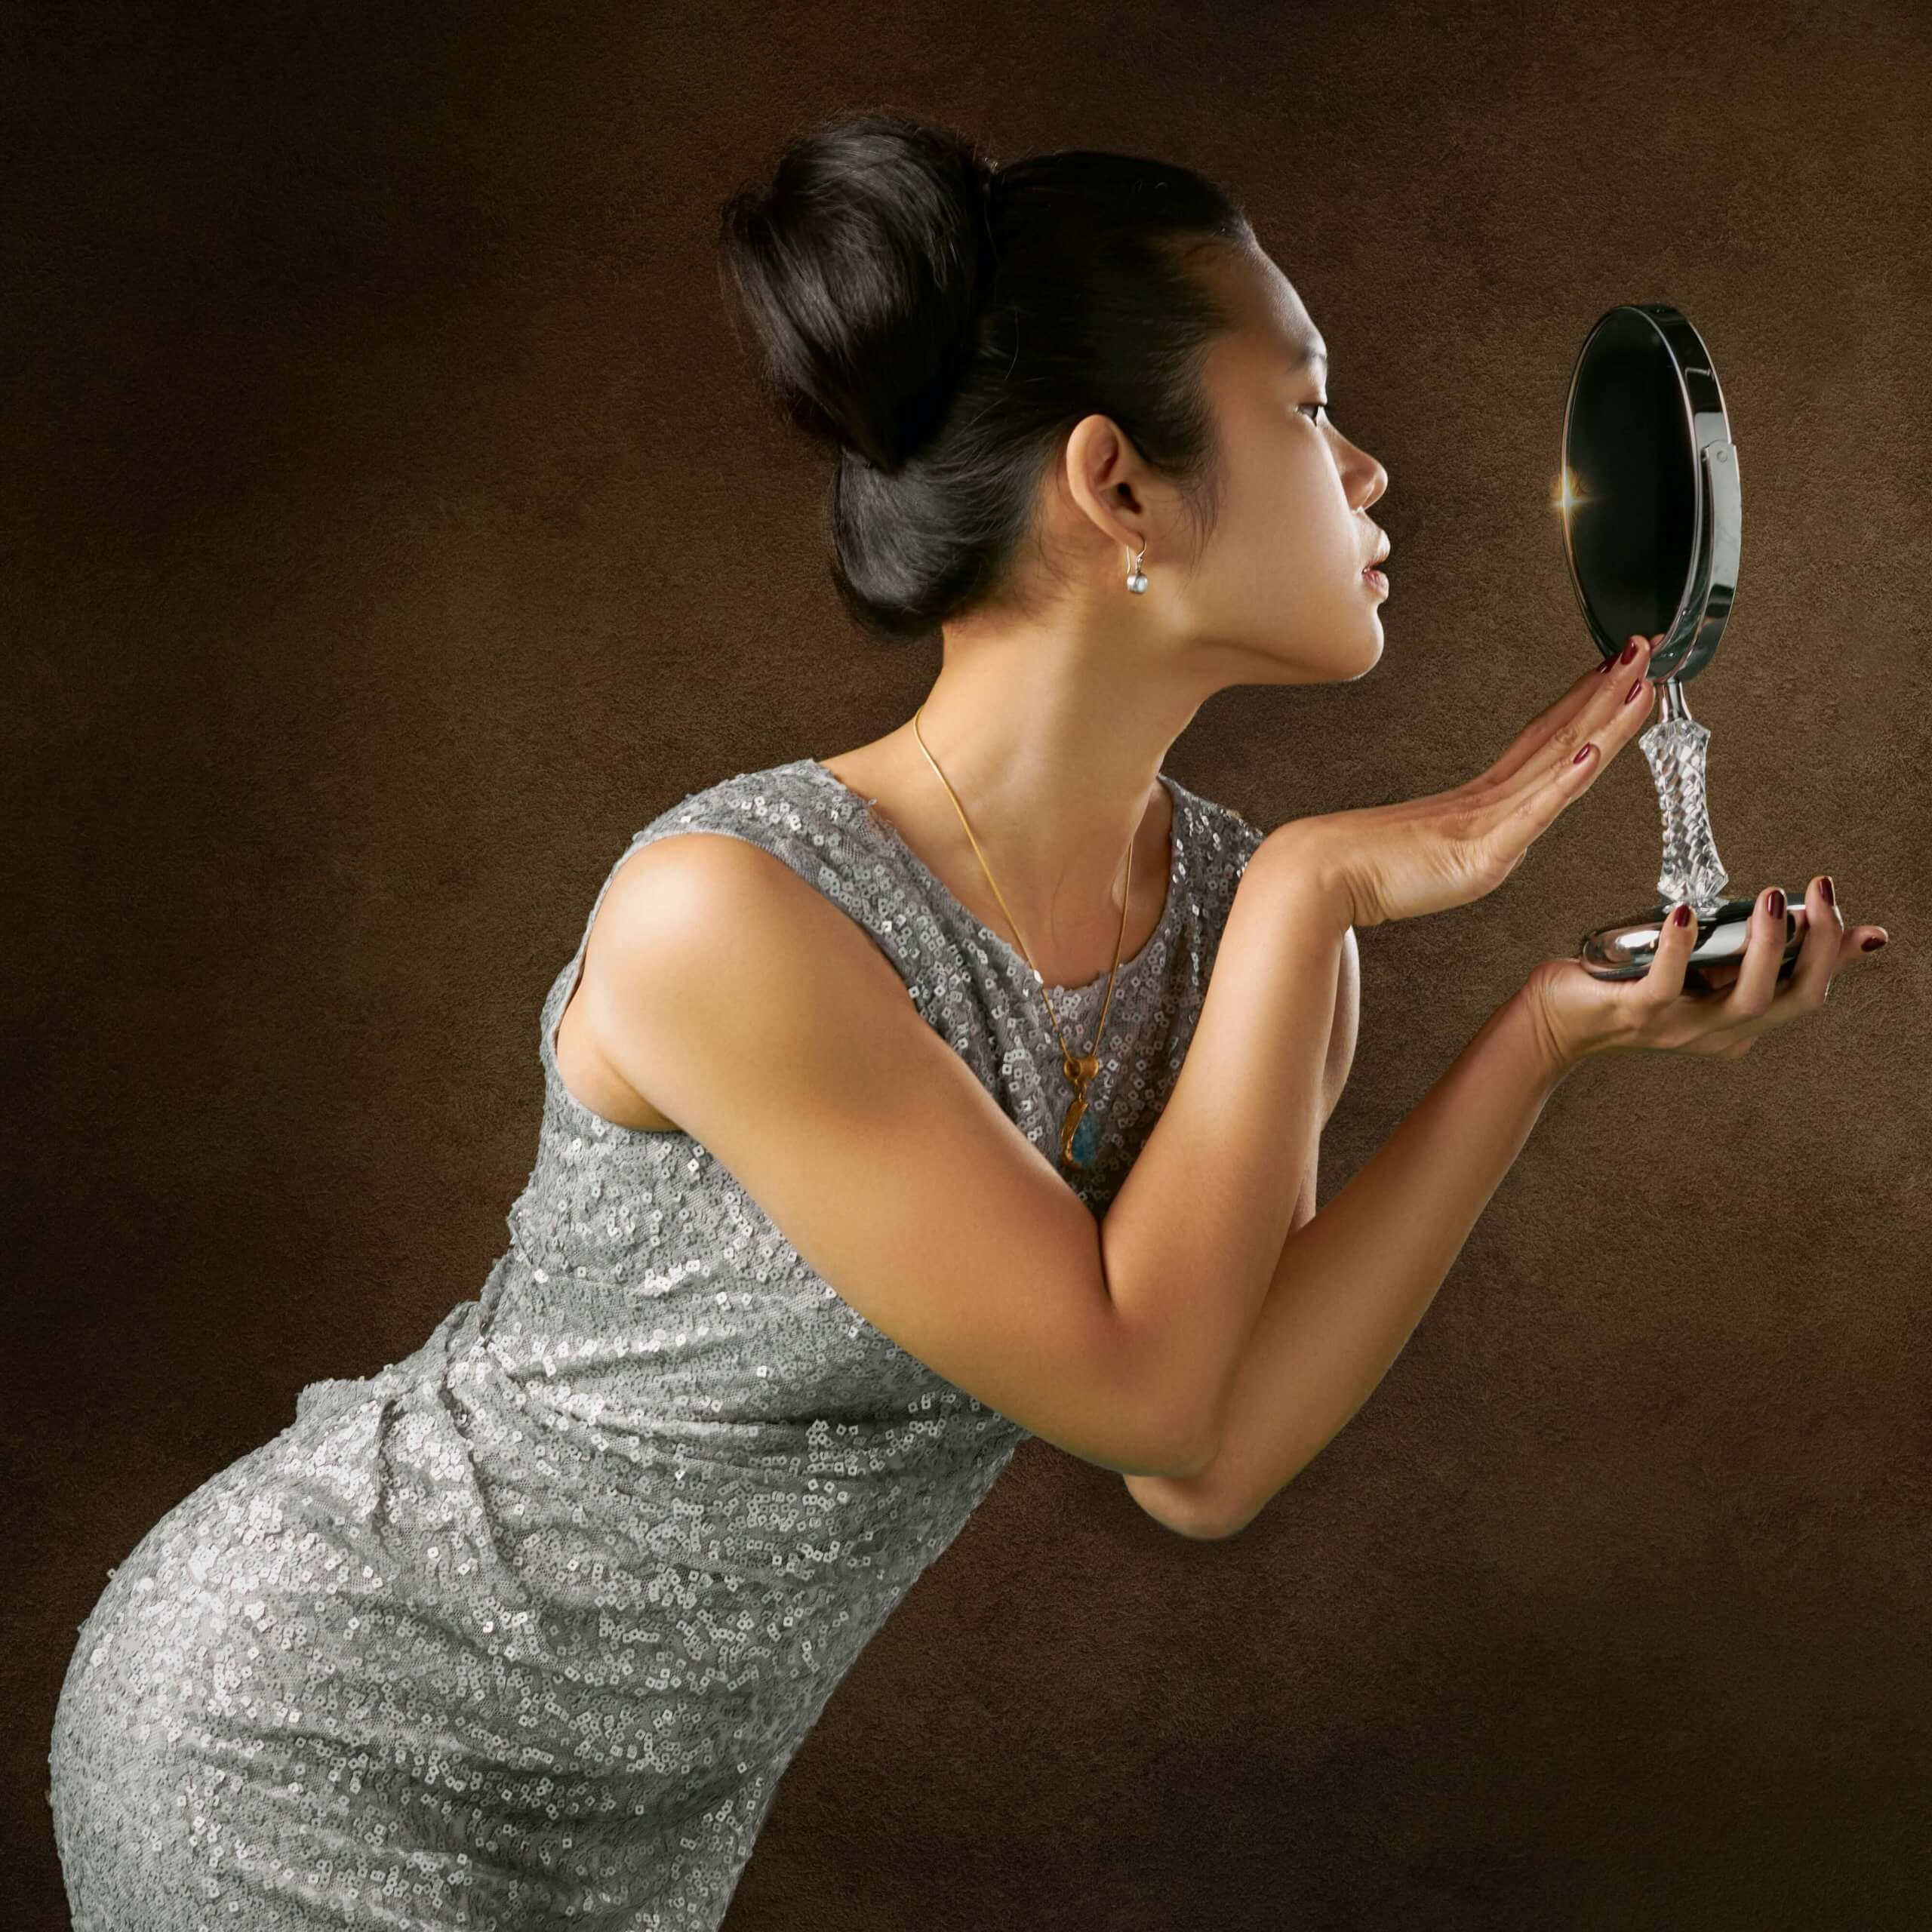 Maladaptive Schemas: Approval Seeking - beautiful woman in glitter ball gown looking in a mirror